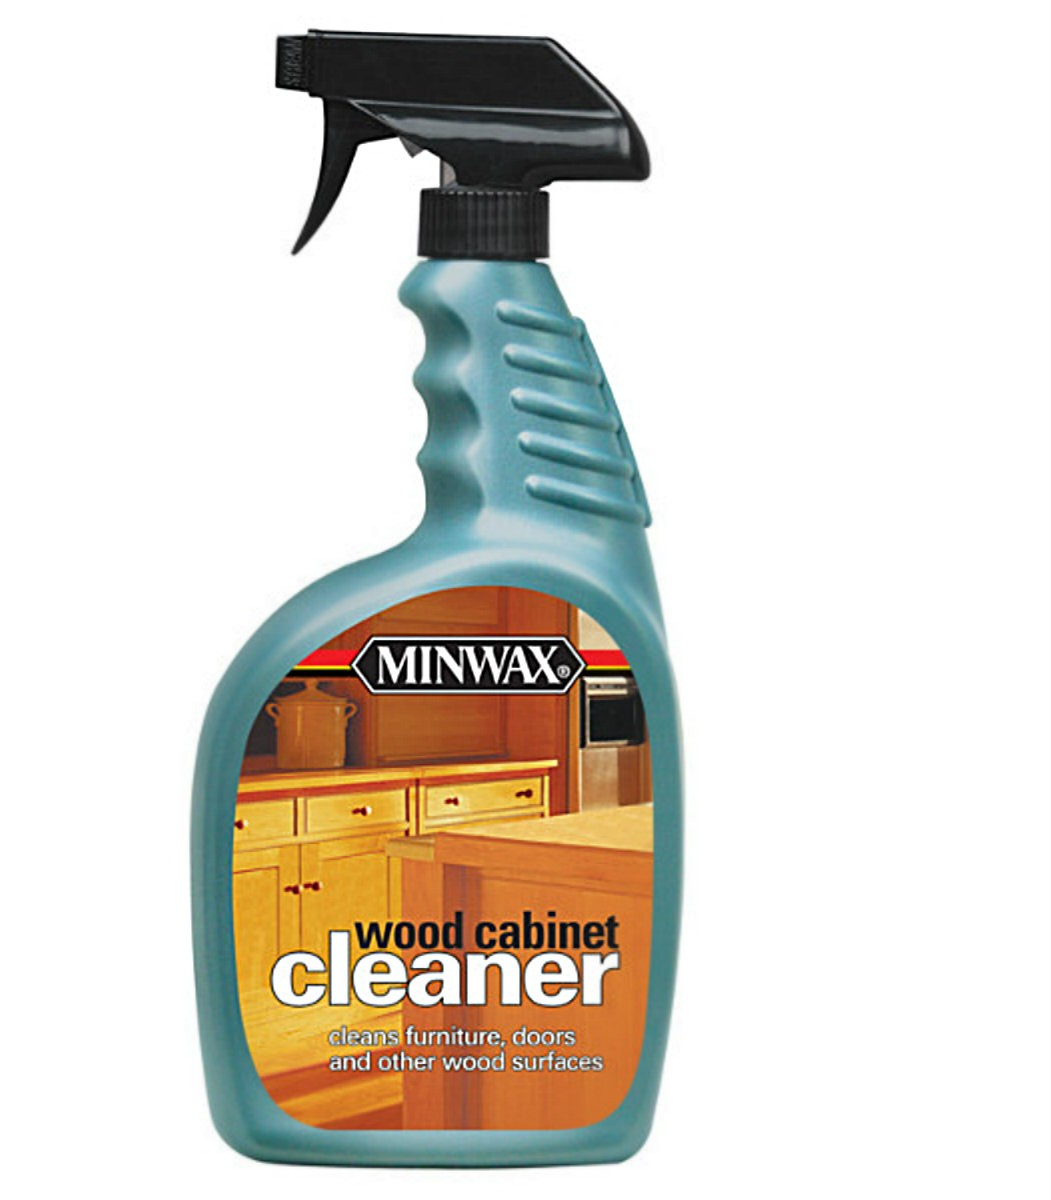 Cleaning Wood Cabinets Kitchen: Buy The Minwax 521270006 Wood Cabinet Cleaner Spray